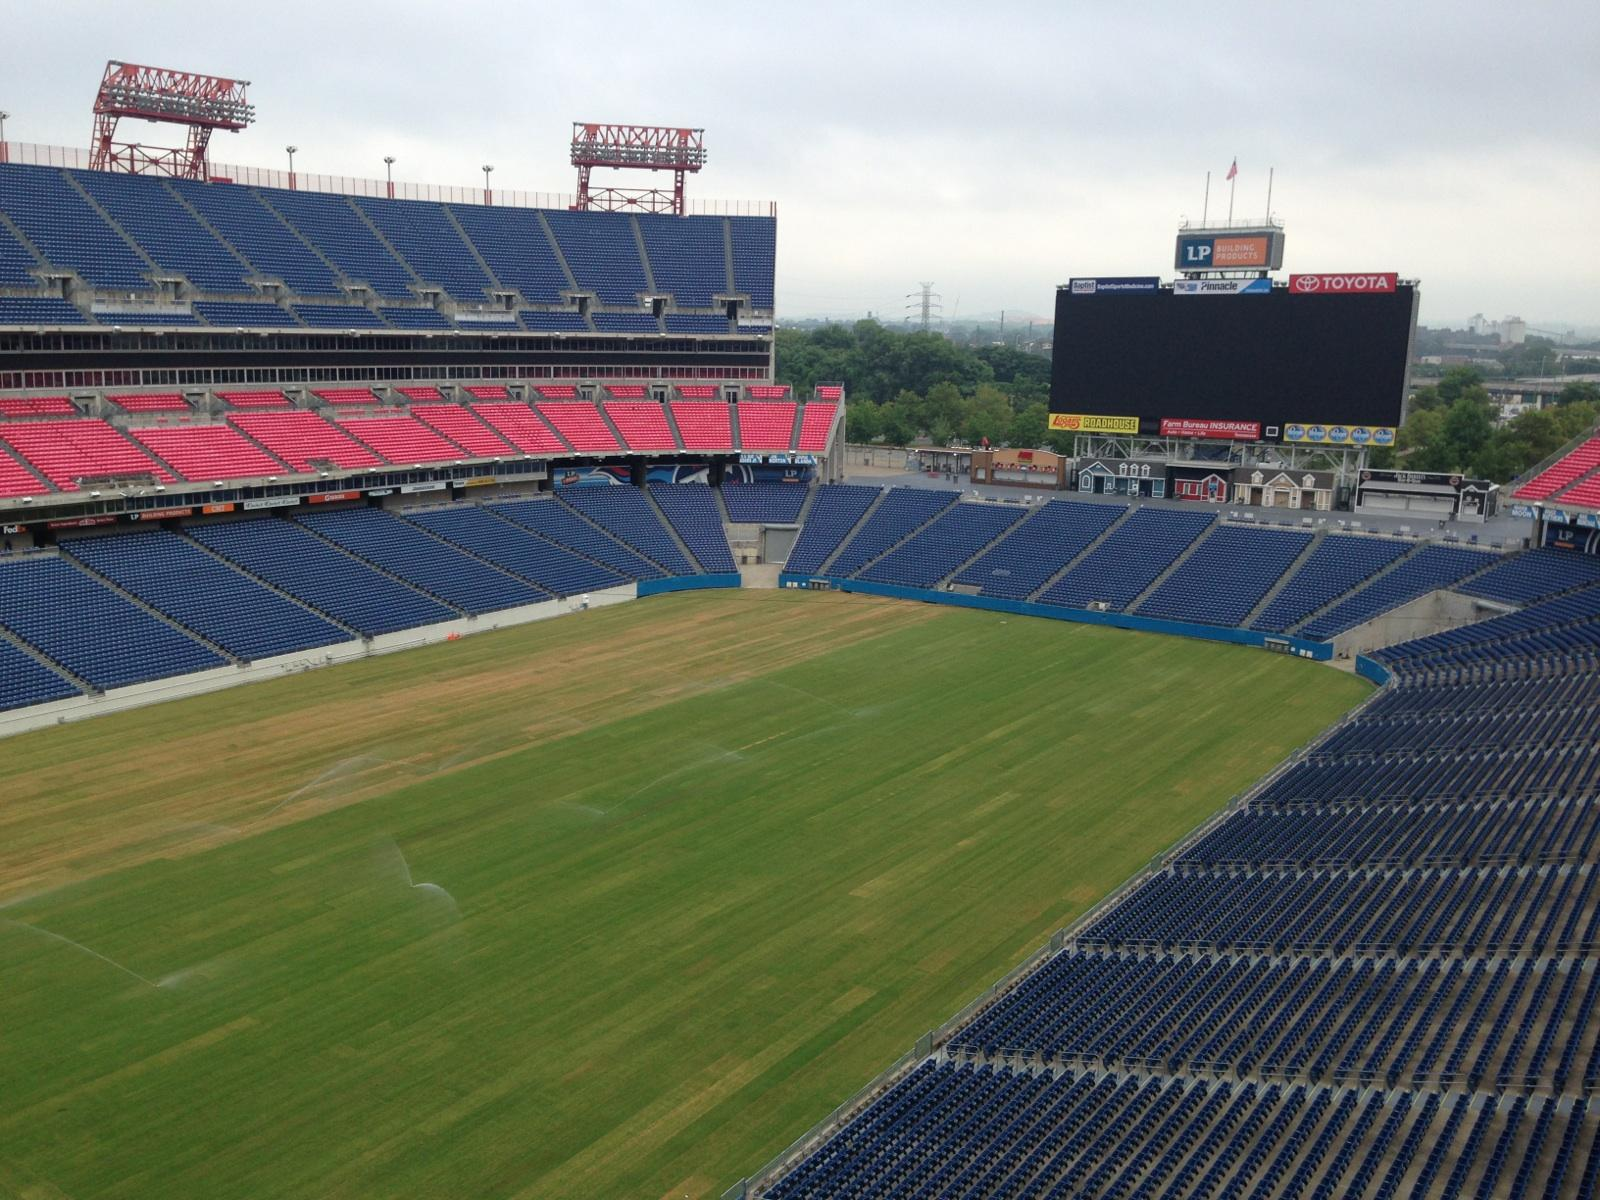 Pictures of lp field in nashville tn